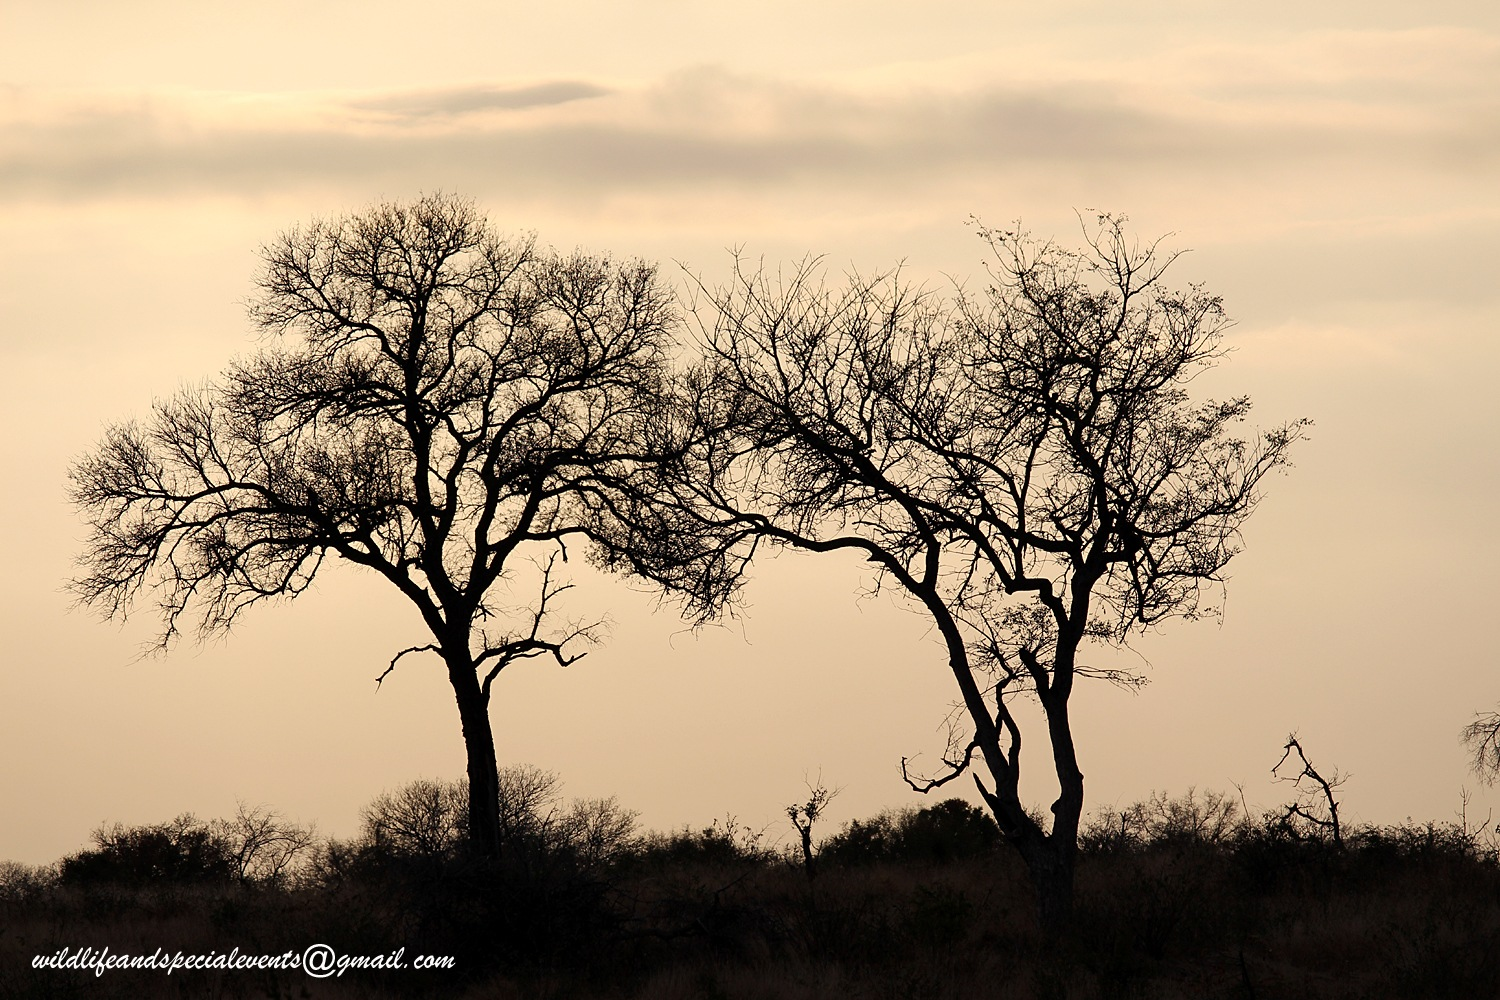 My new day in Africa by oosie